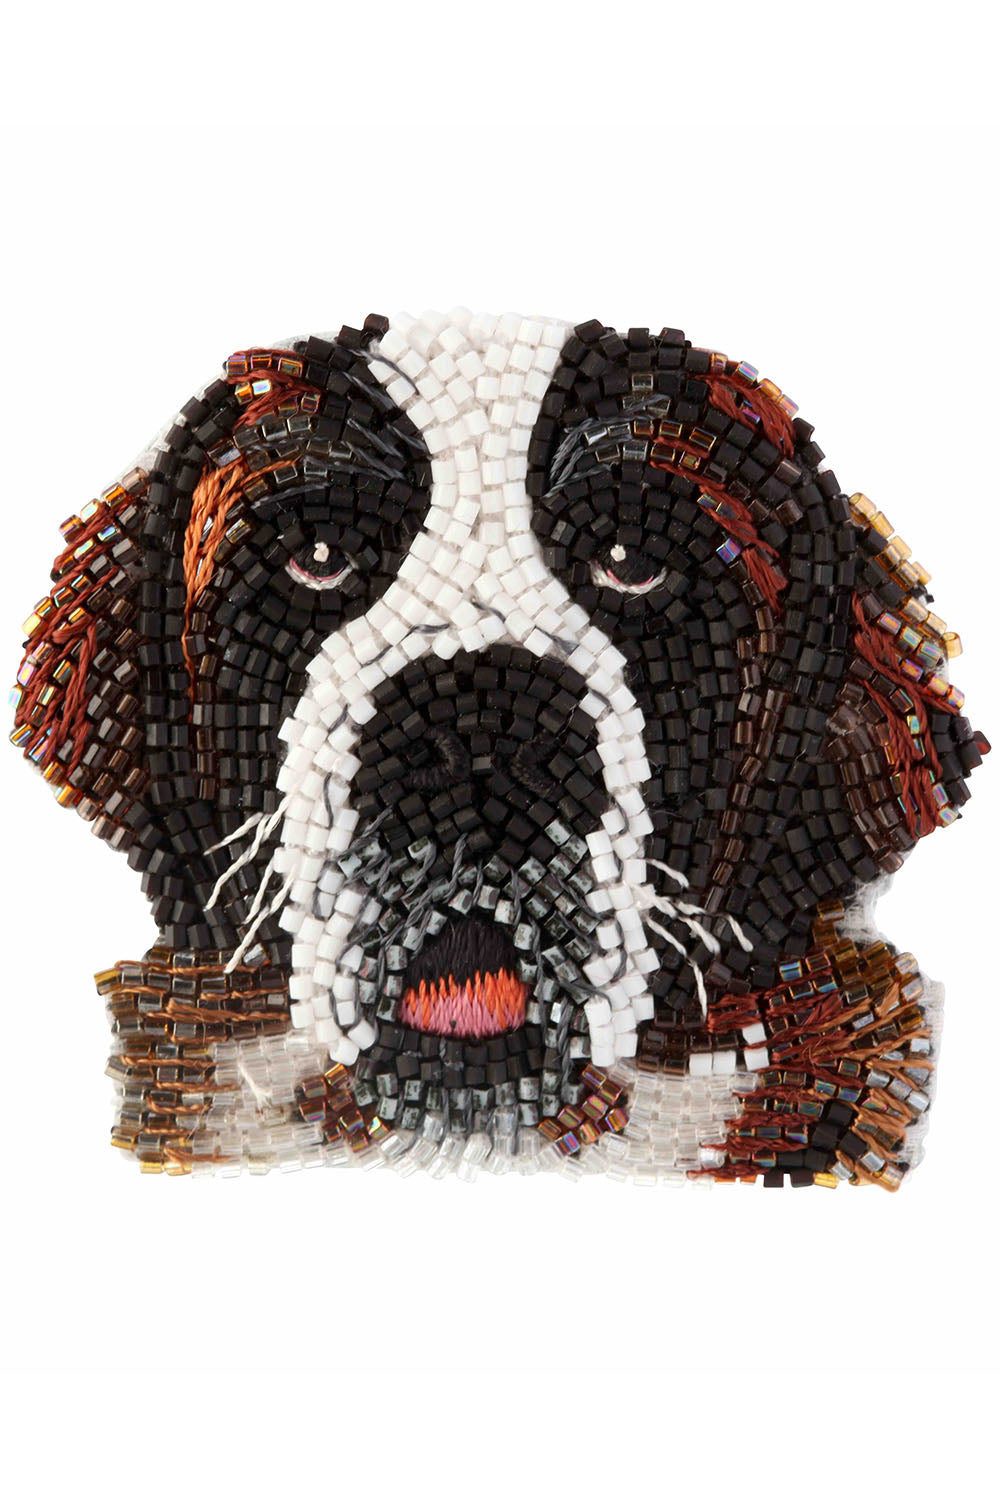 Dog Brooch in St Bernard